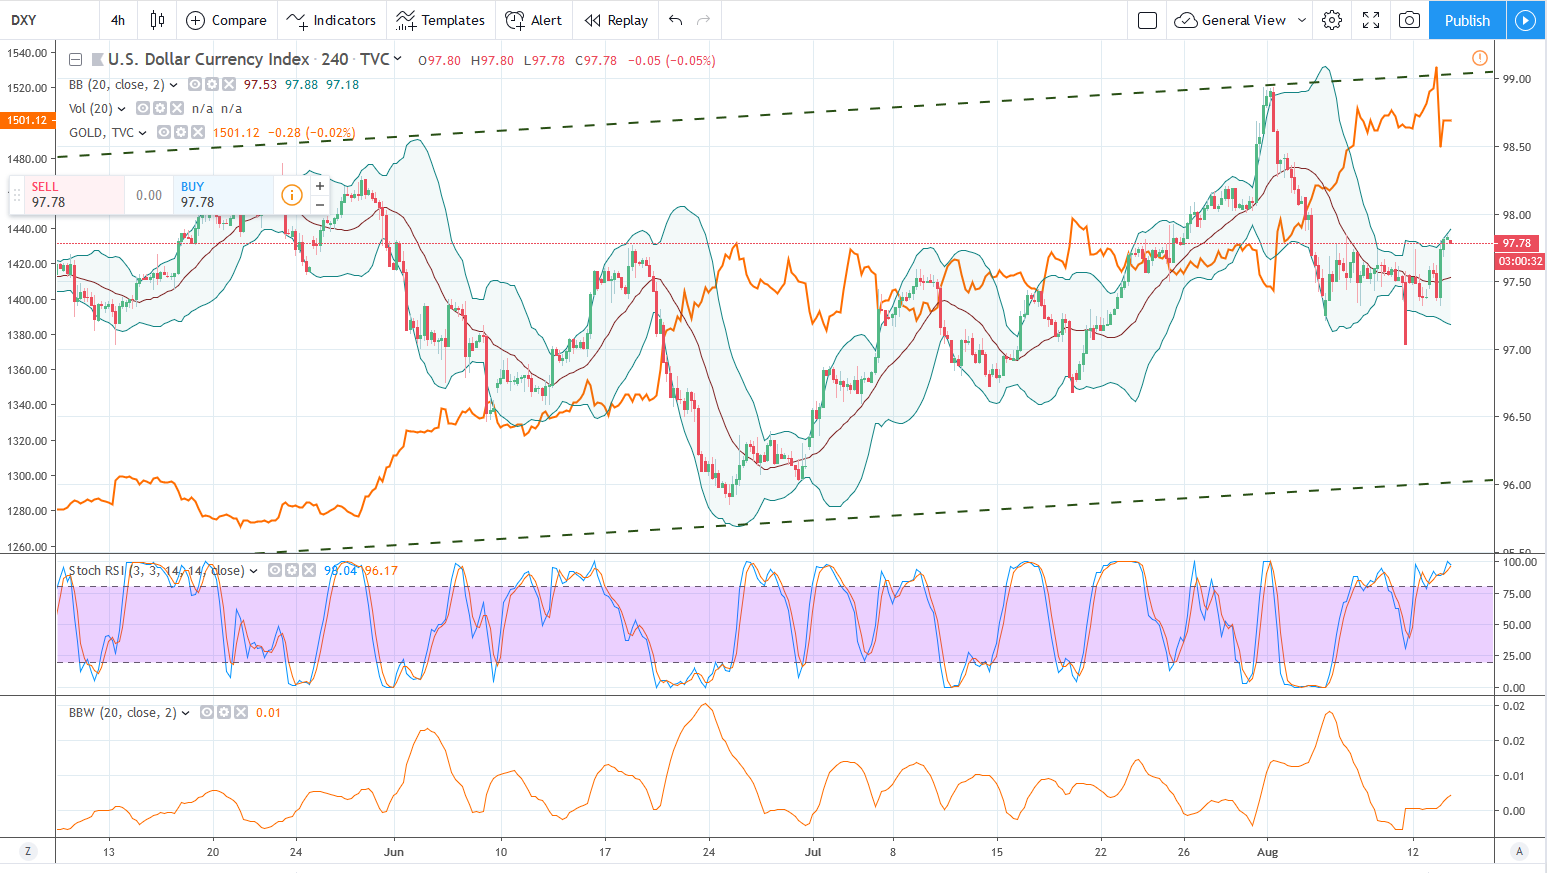 DXY-4H-20190814-1.png